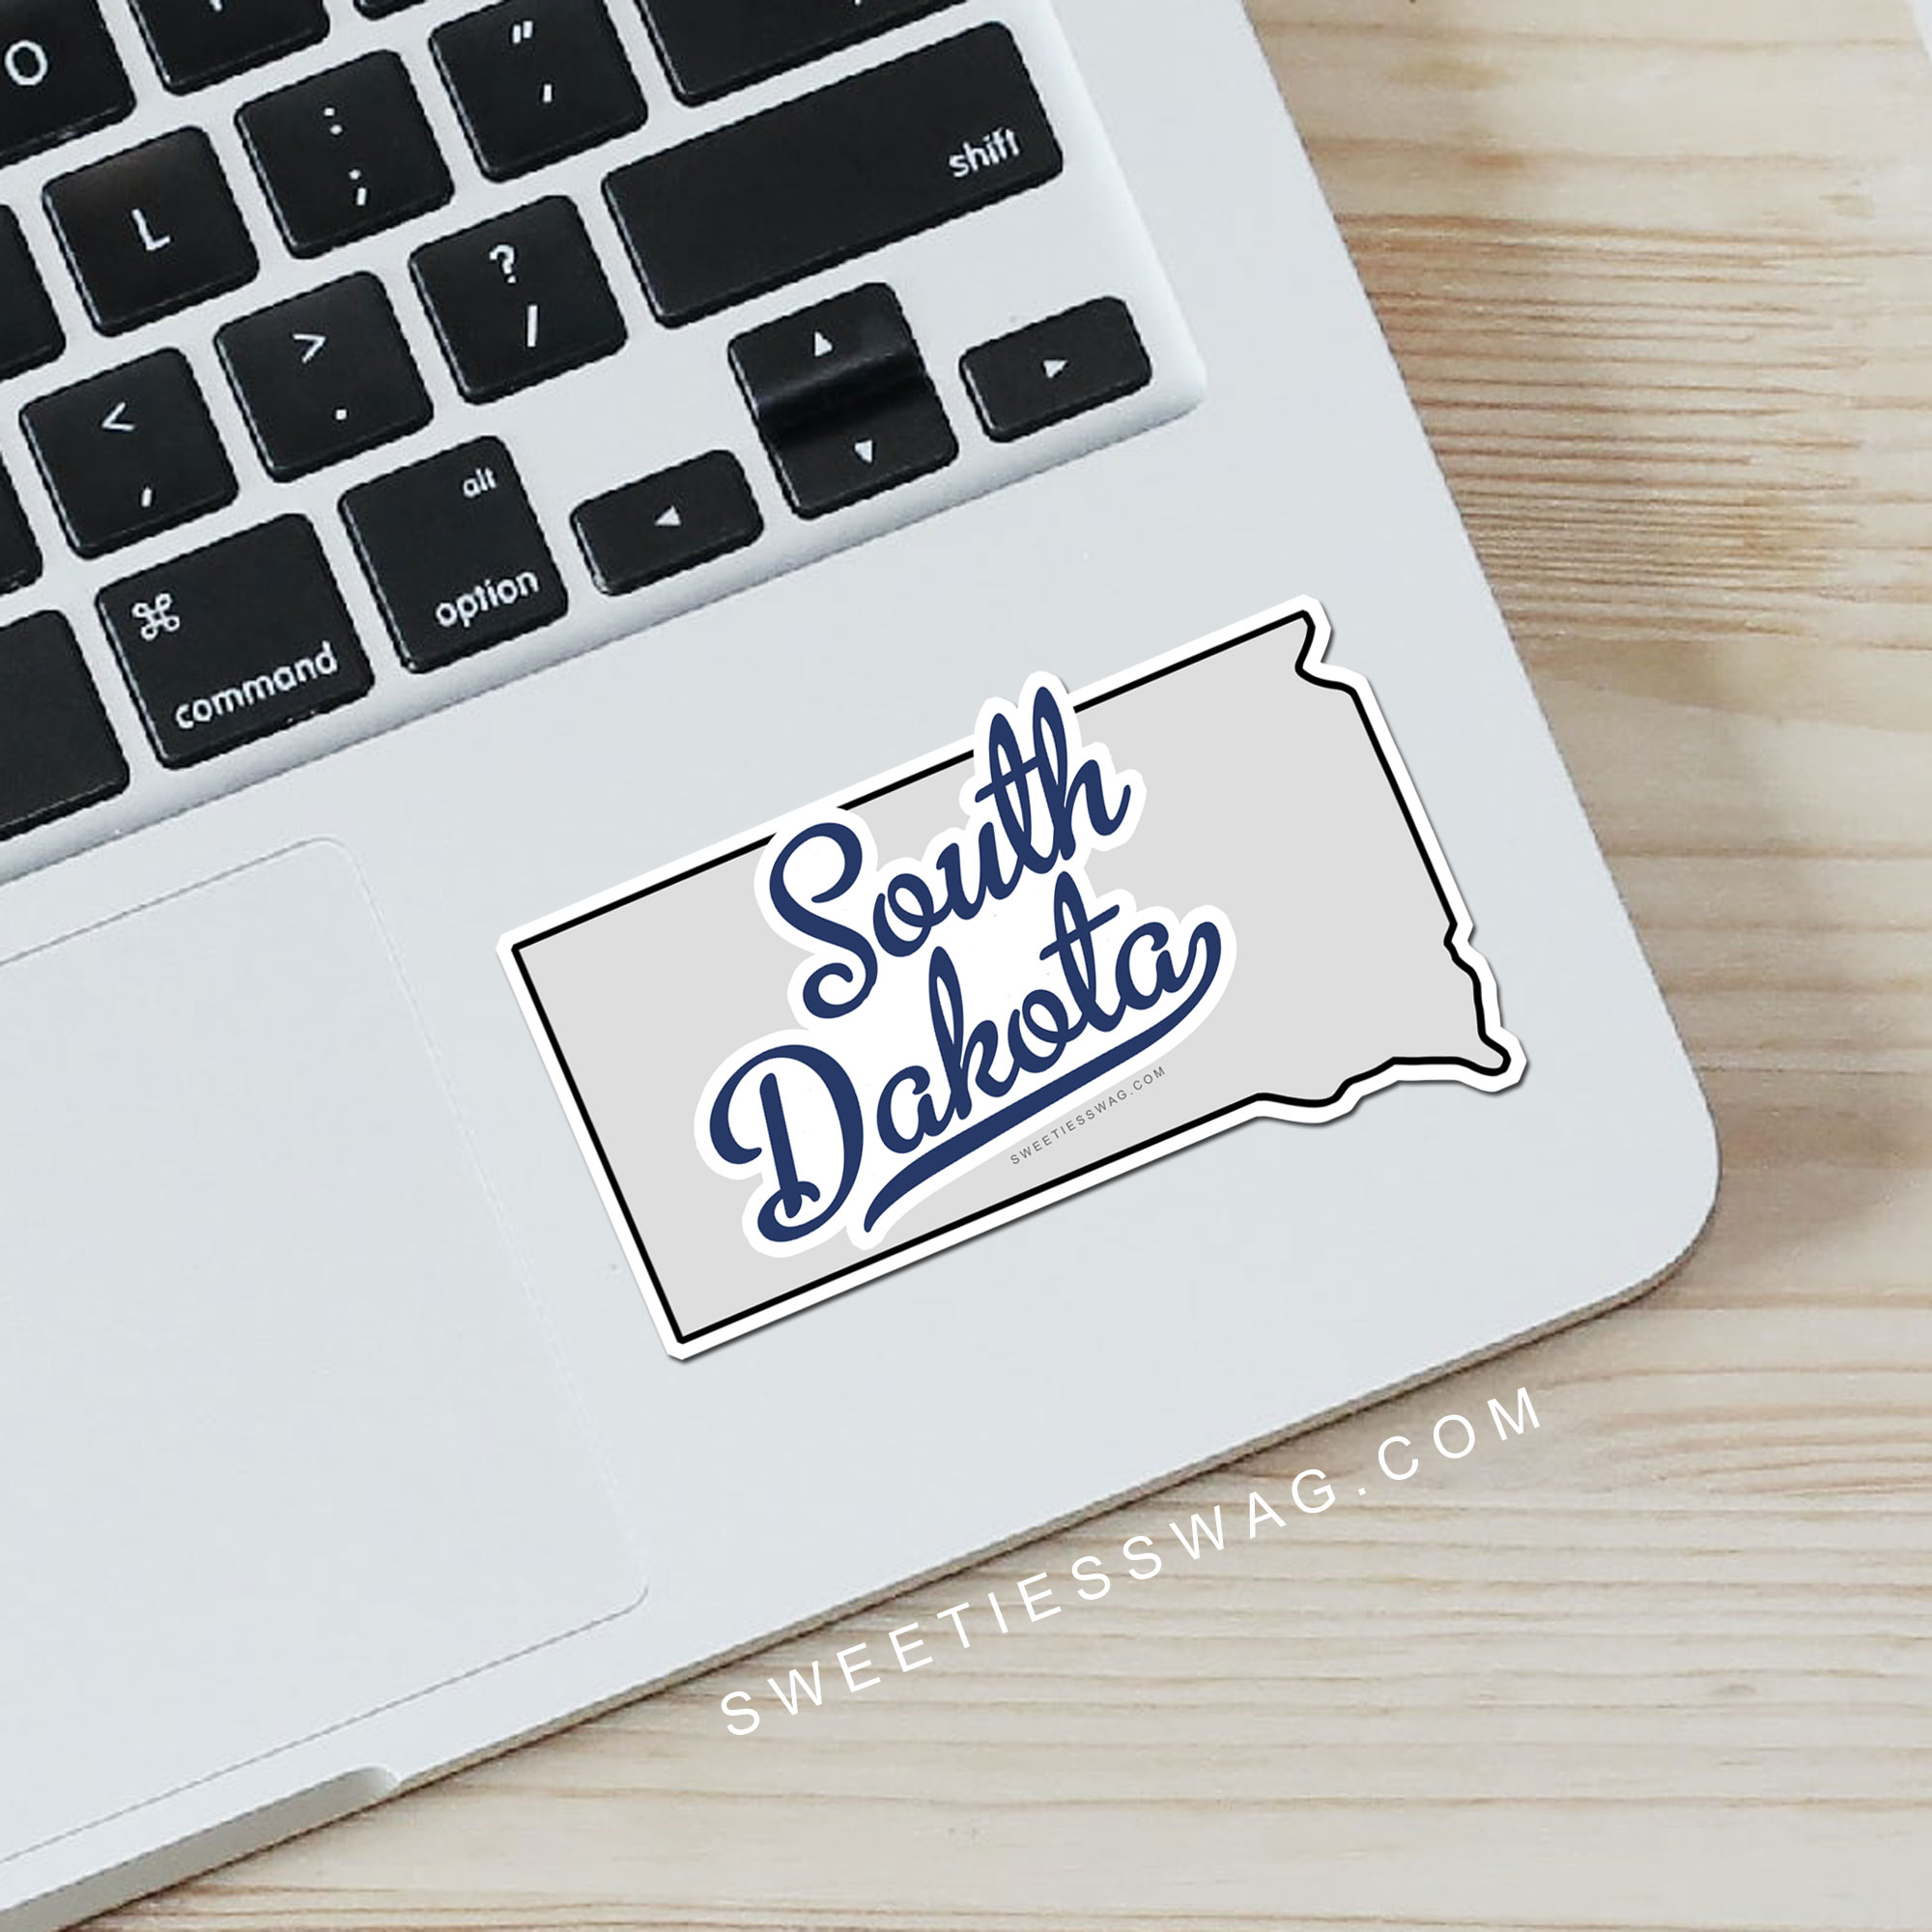 southdakota-diecut-sticker1